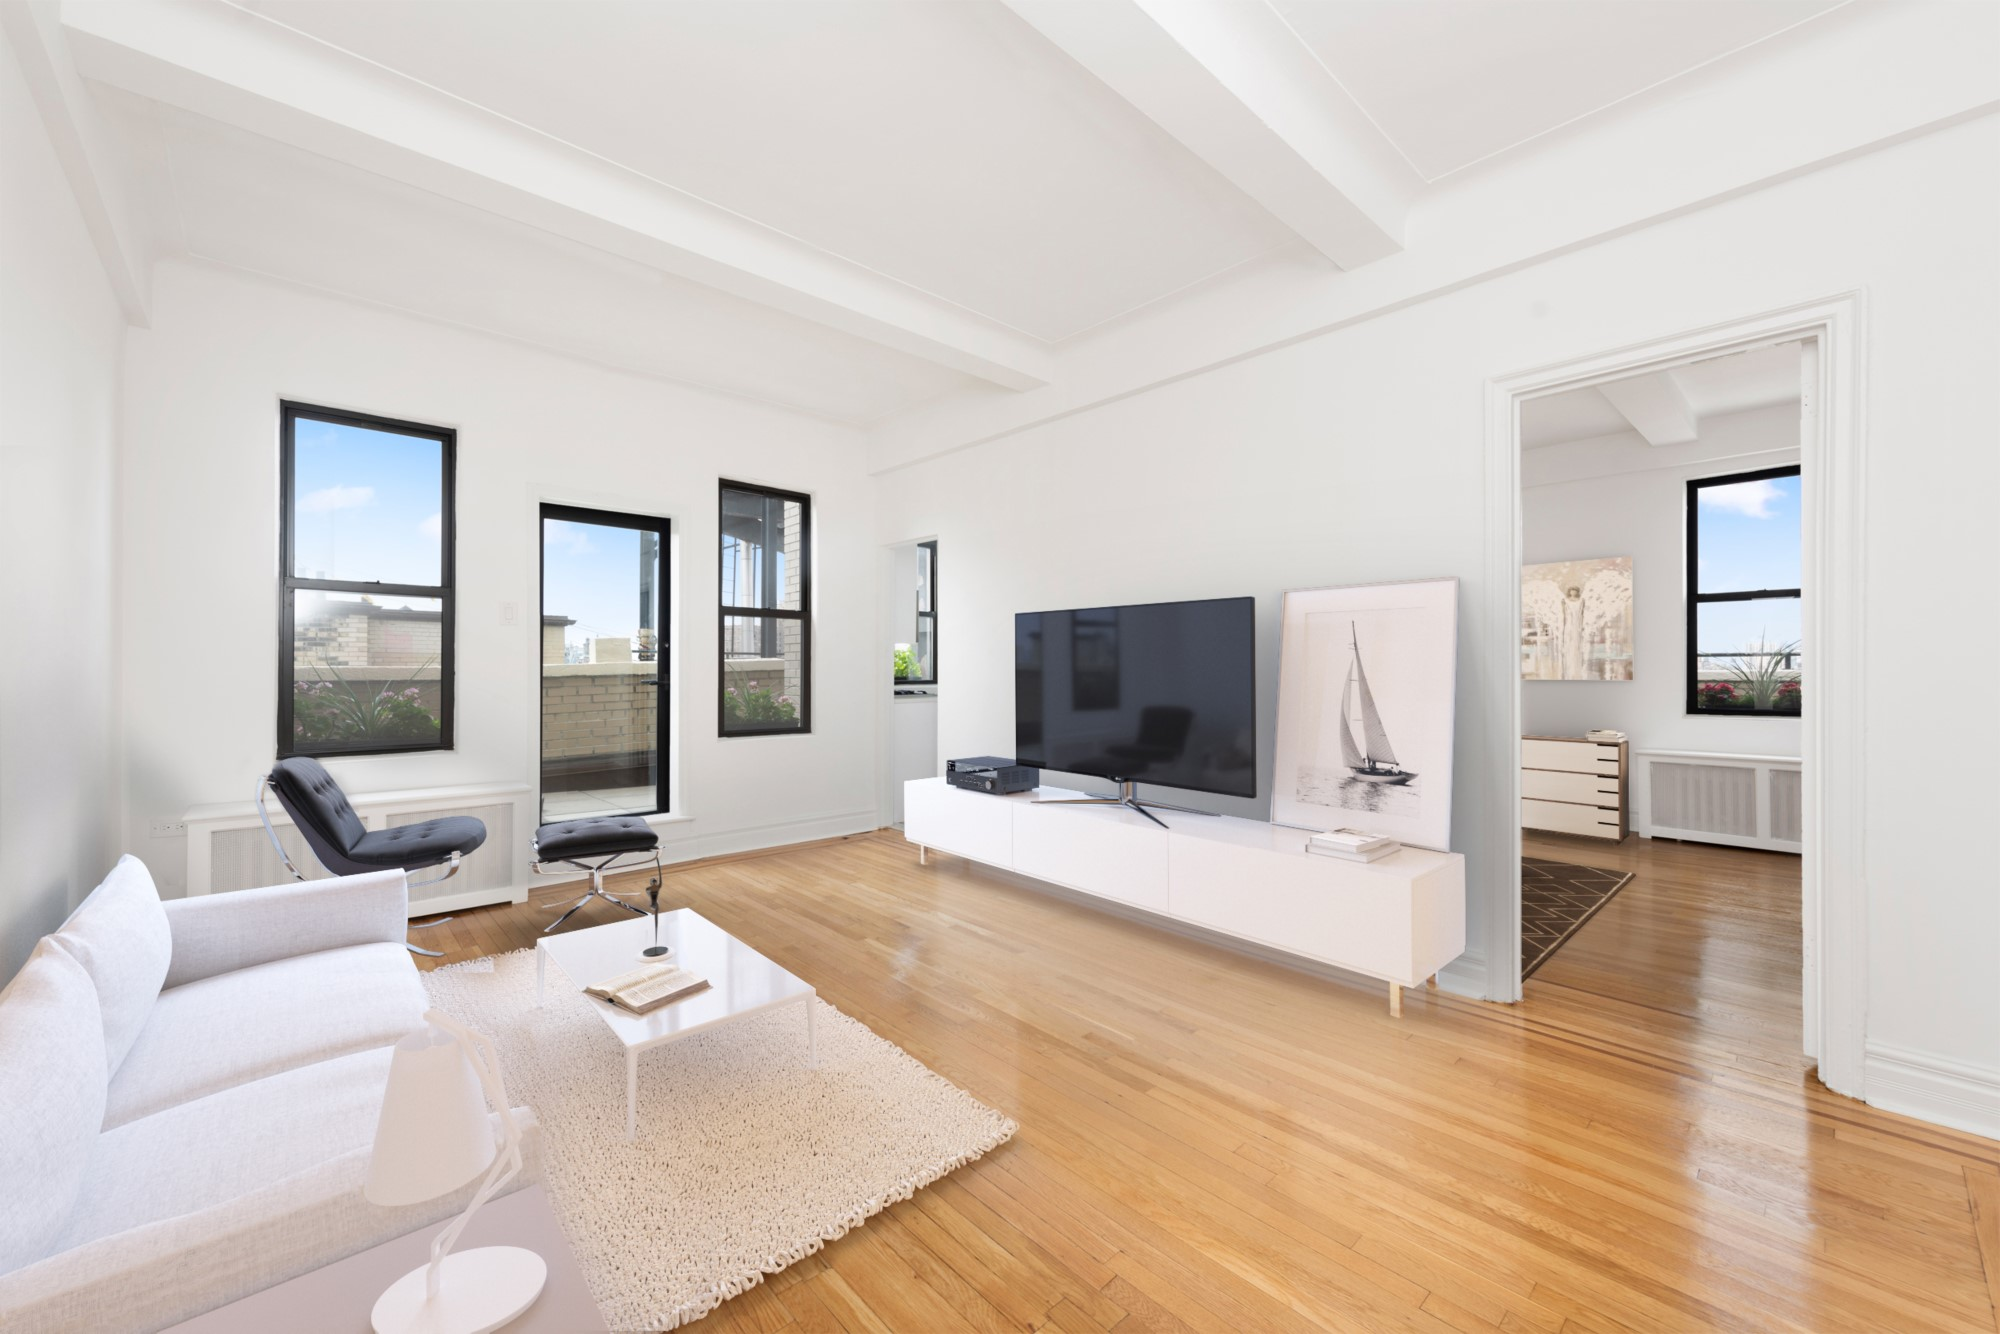 41 West 72nd, New York, New York, New York, United States 10023, 1 Bedroom Bedrooms, ,1 BathroomBathrooms,Condo,Rented,The Hermitage,West 72nd,18,1066